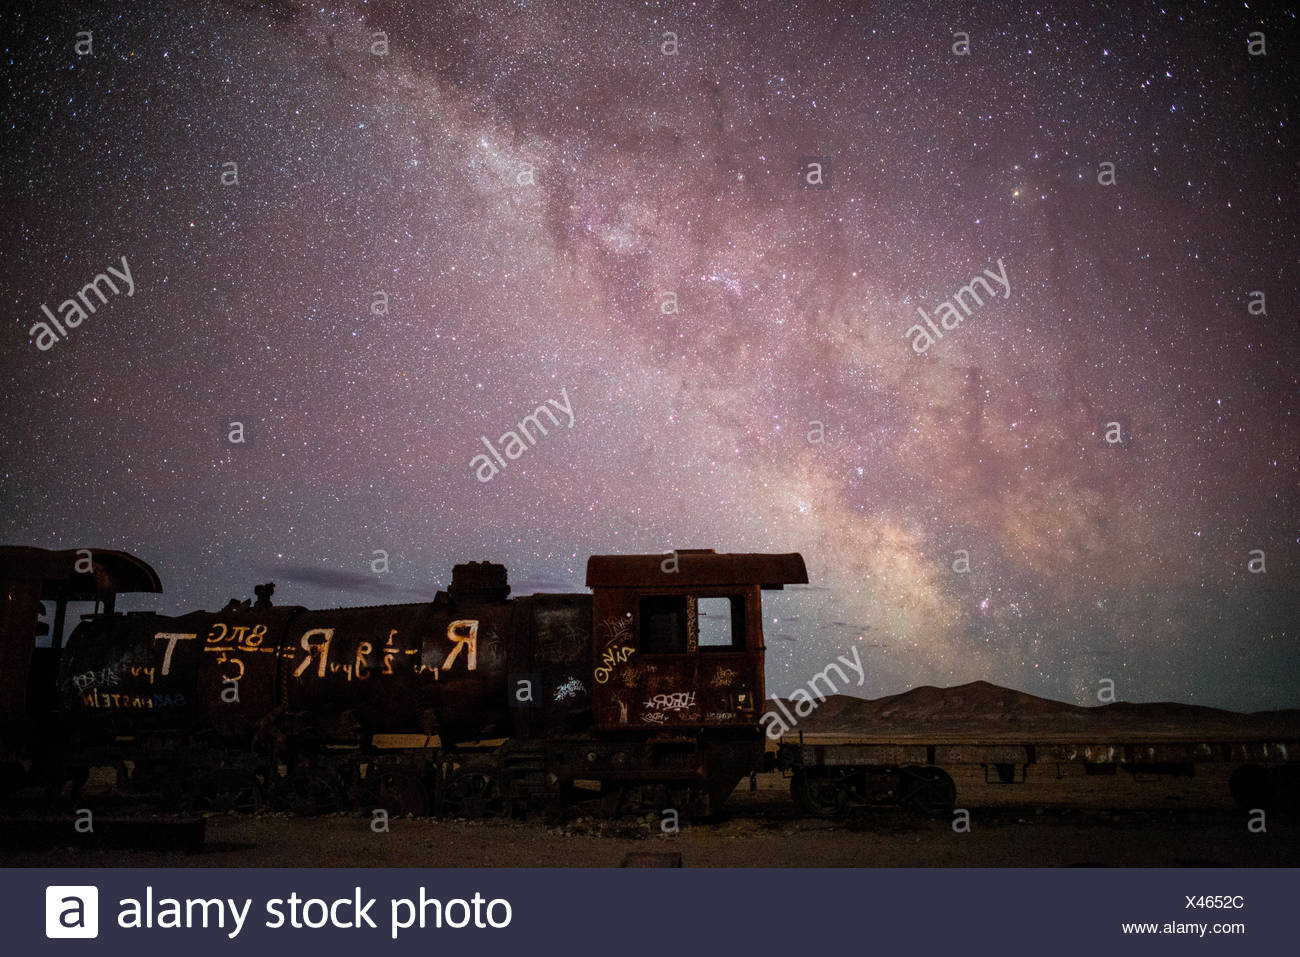 Einstein's Theory of General Relativity written on an old locomotive. The Milky Way overhead. - Stock Image